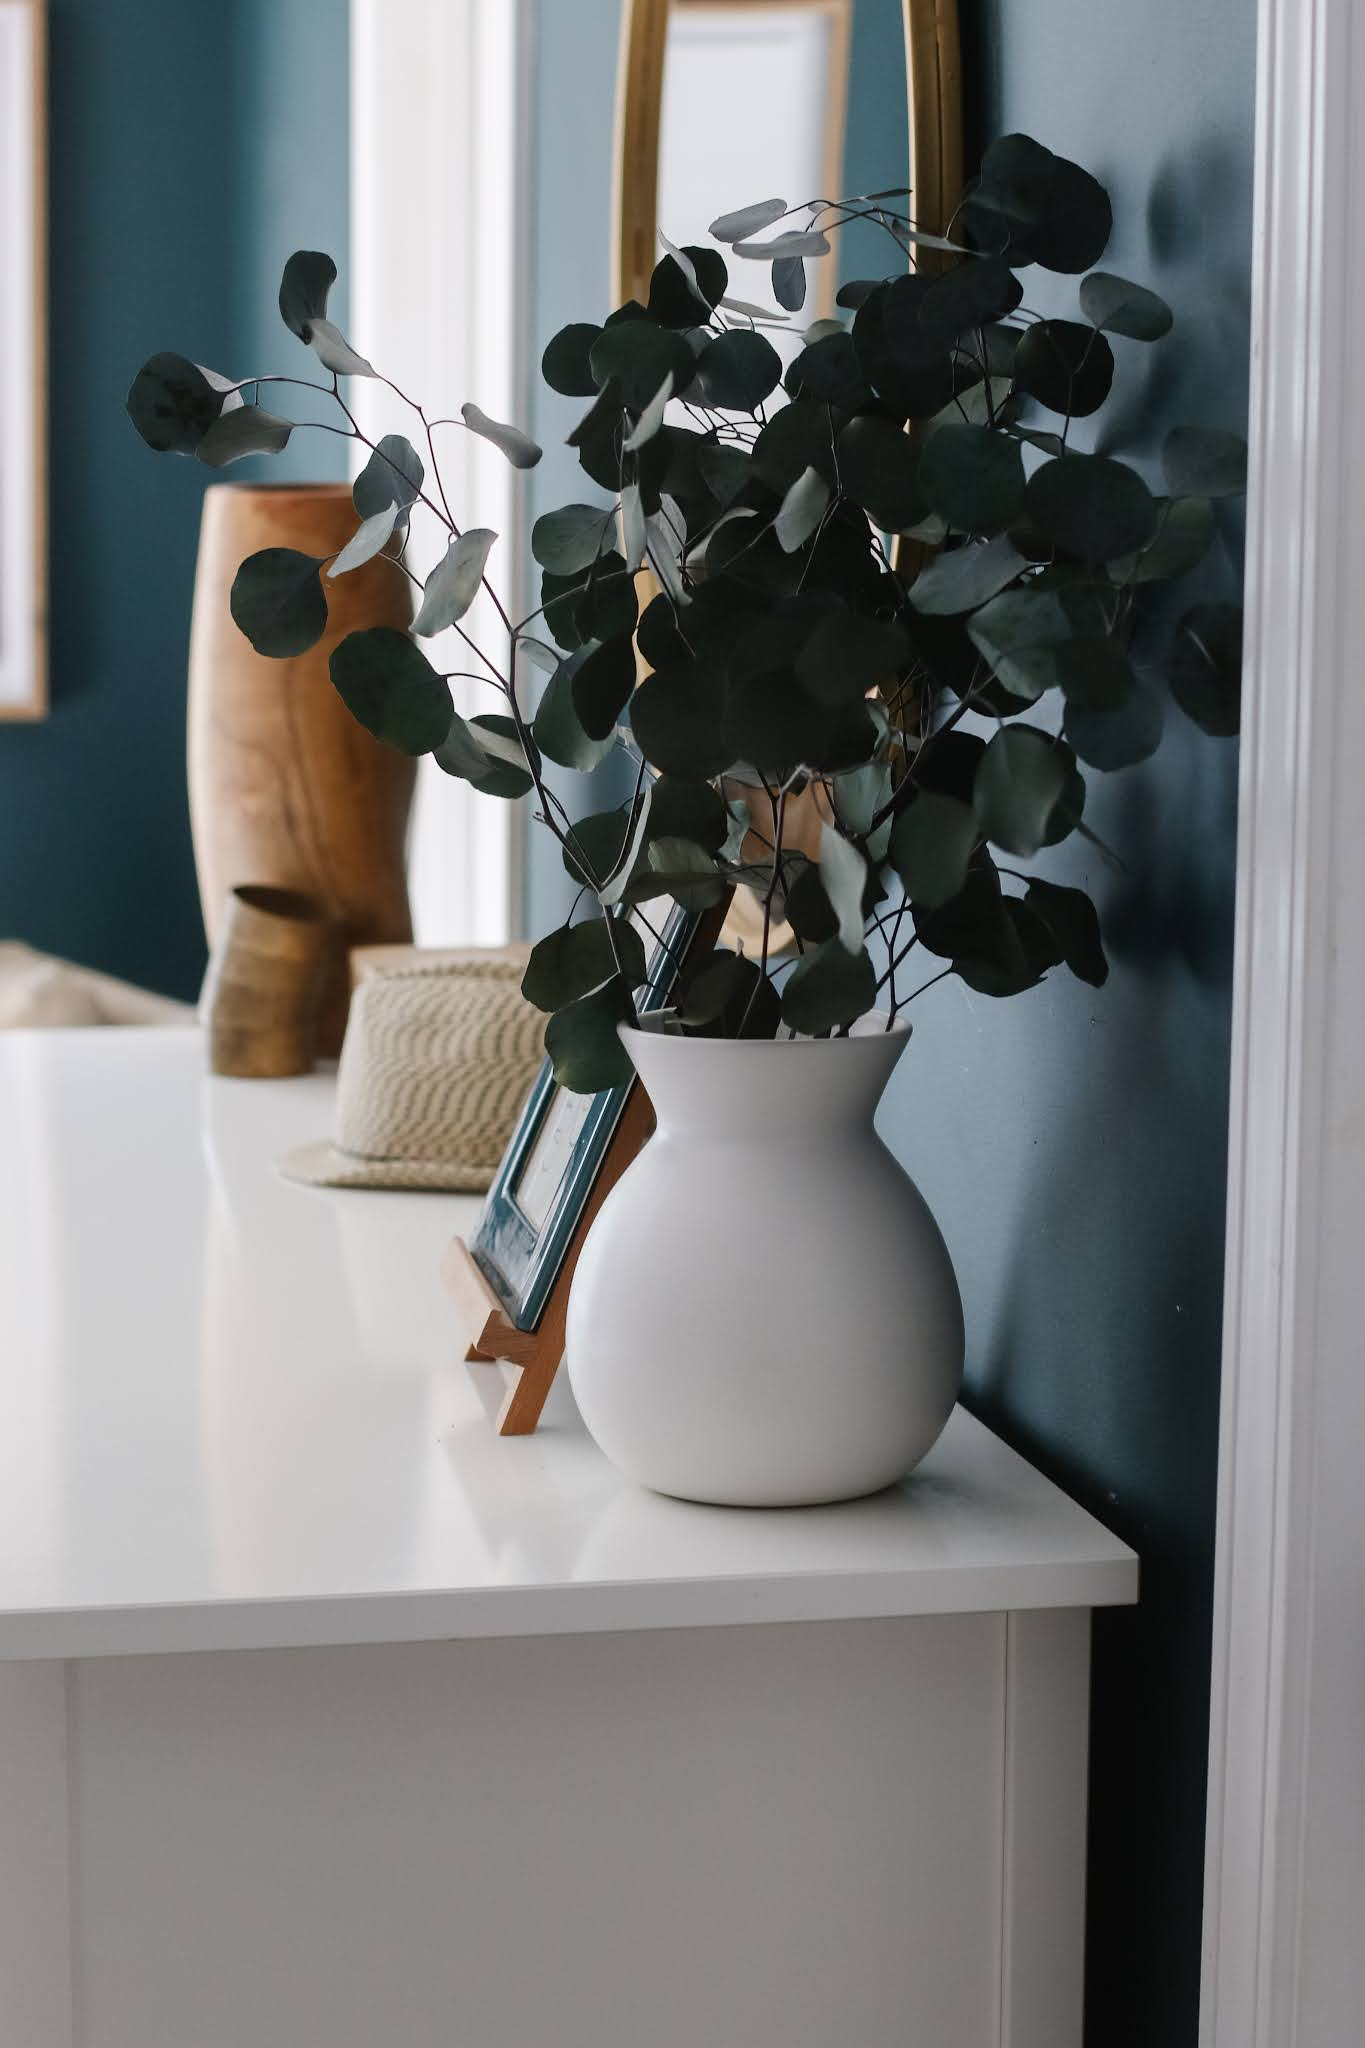 Sherwin Williams Cascades in a Bedroom